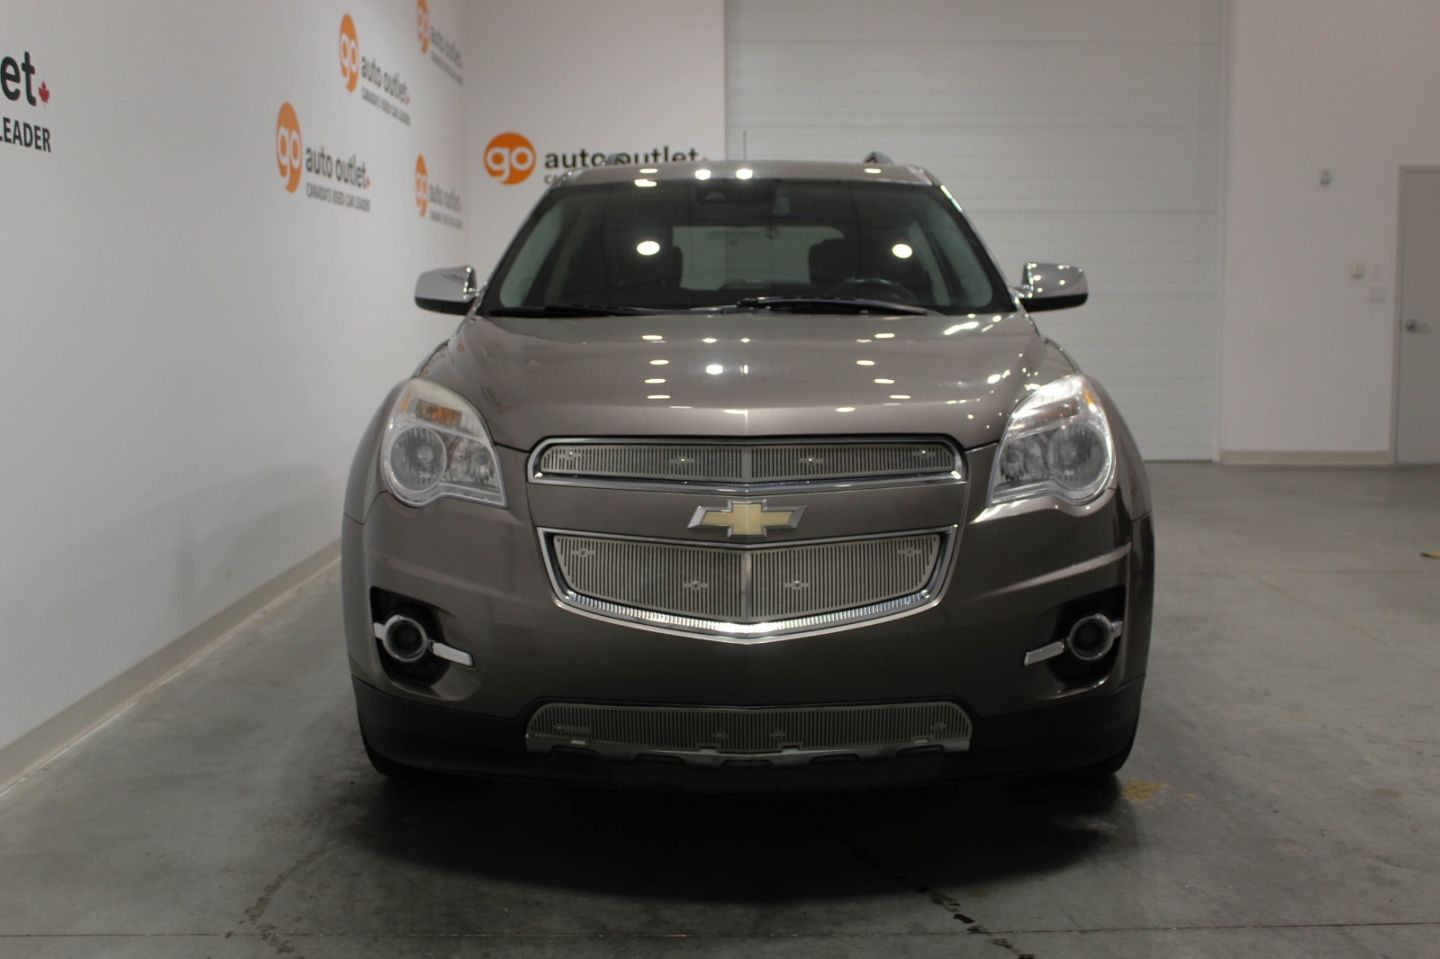 2012 Chevrolet Equinox 2LT for sale in Edmonton, Alberta